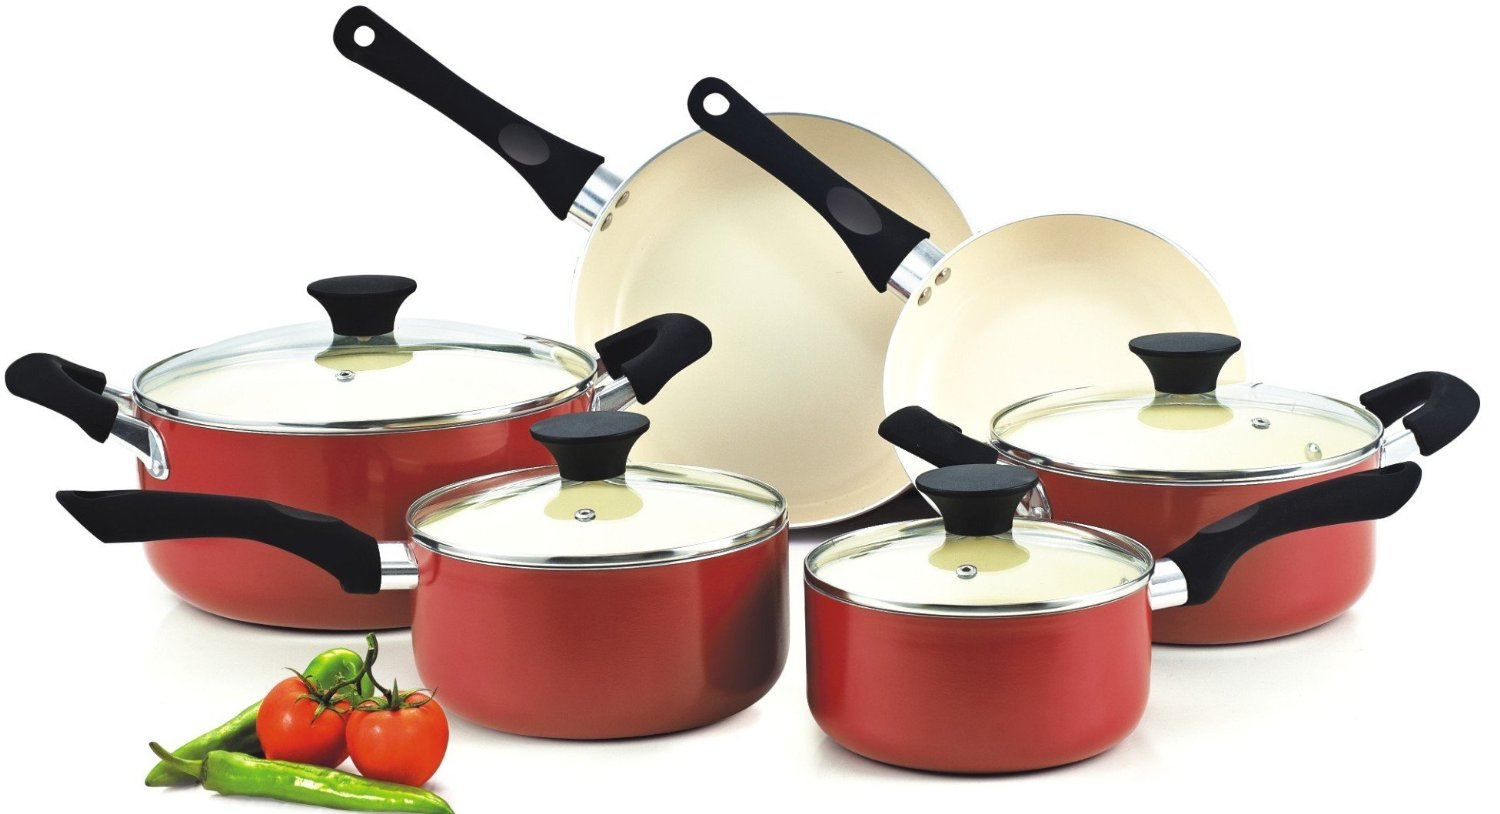 6 Best Non Toxic Ceramic Induction Cookware Sets To Use With Ranges